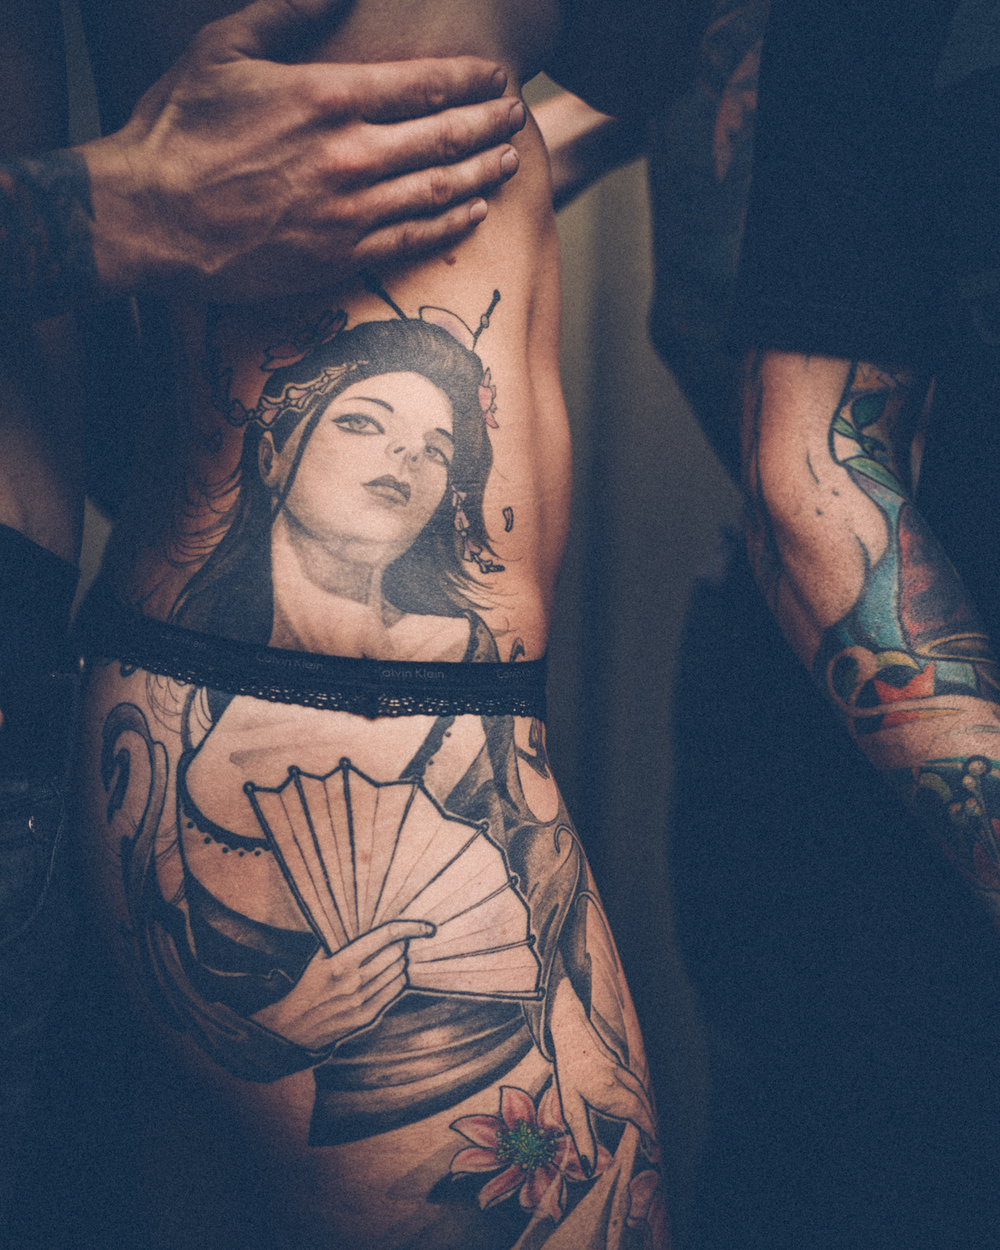 Union-of-Makers-Tattoo-Artistry-Part-Two-04.jpg